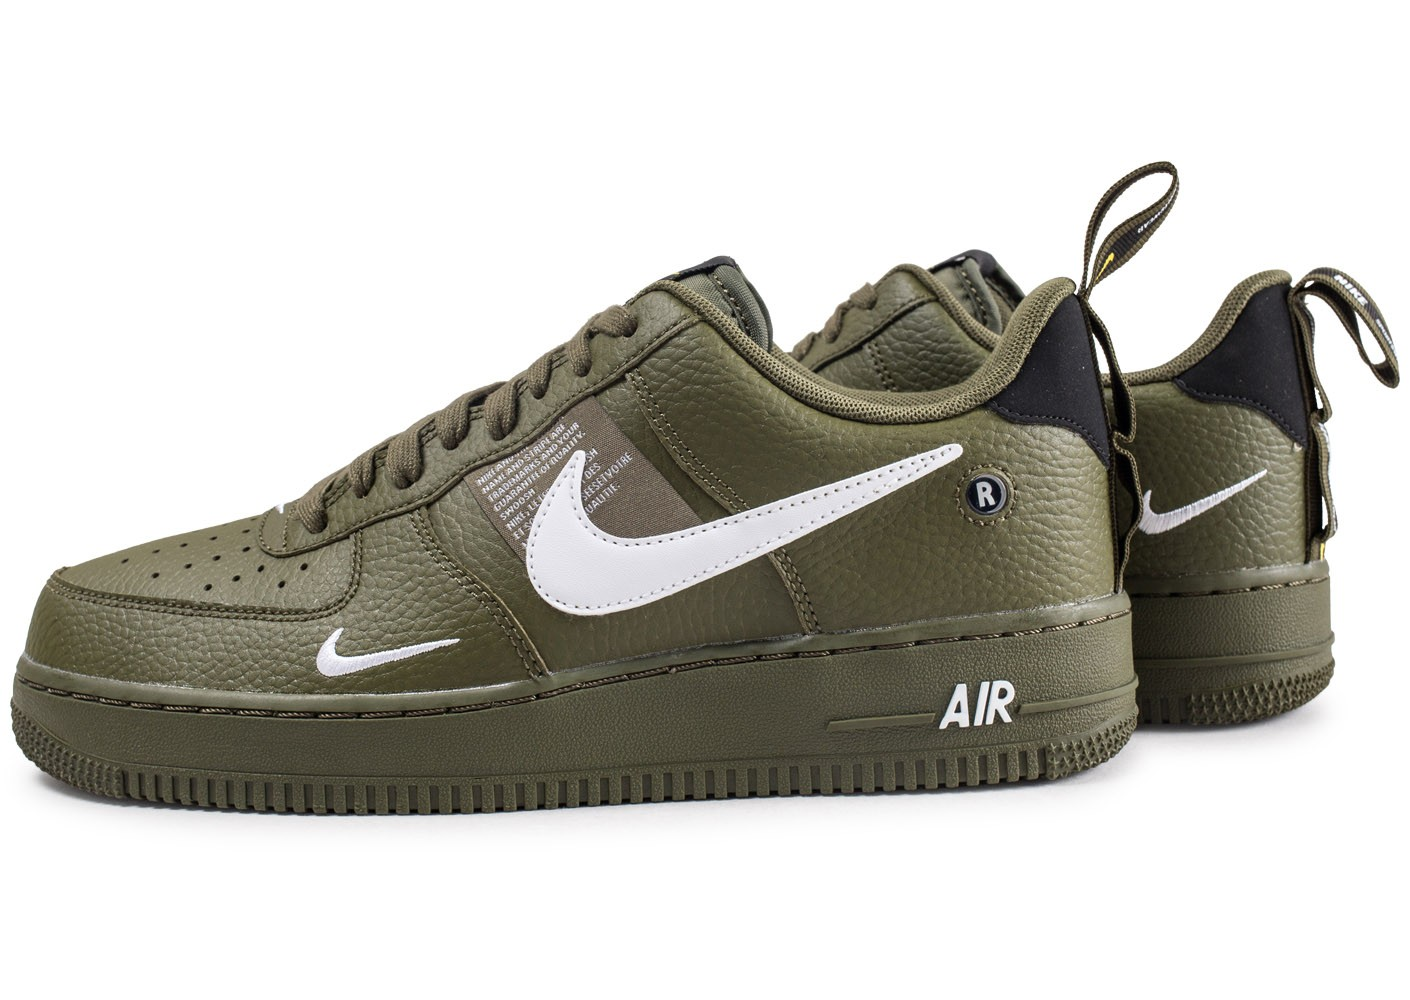 Nike Air Force 1 '07 LV8 Utility kaki - Chaussures Baskets ...